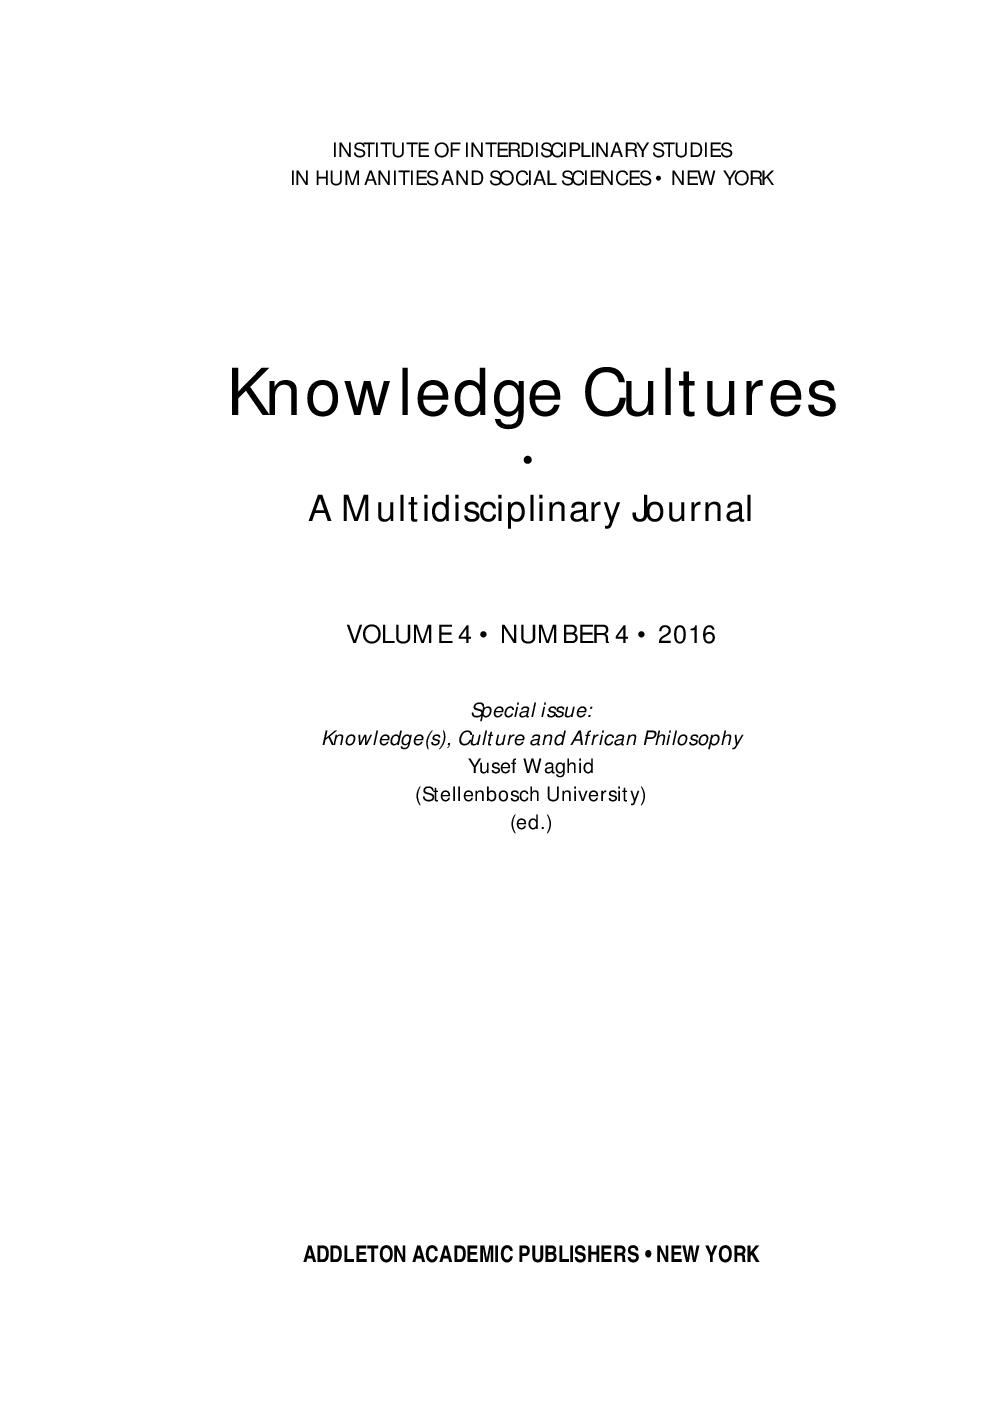 KNOWLEDGE(S), CULTURE AND AFRICAN PHILOSOPHY: AN INTRODUCTION